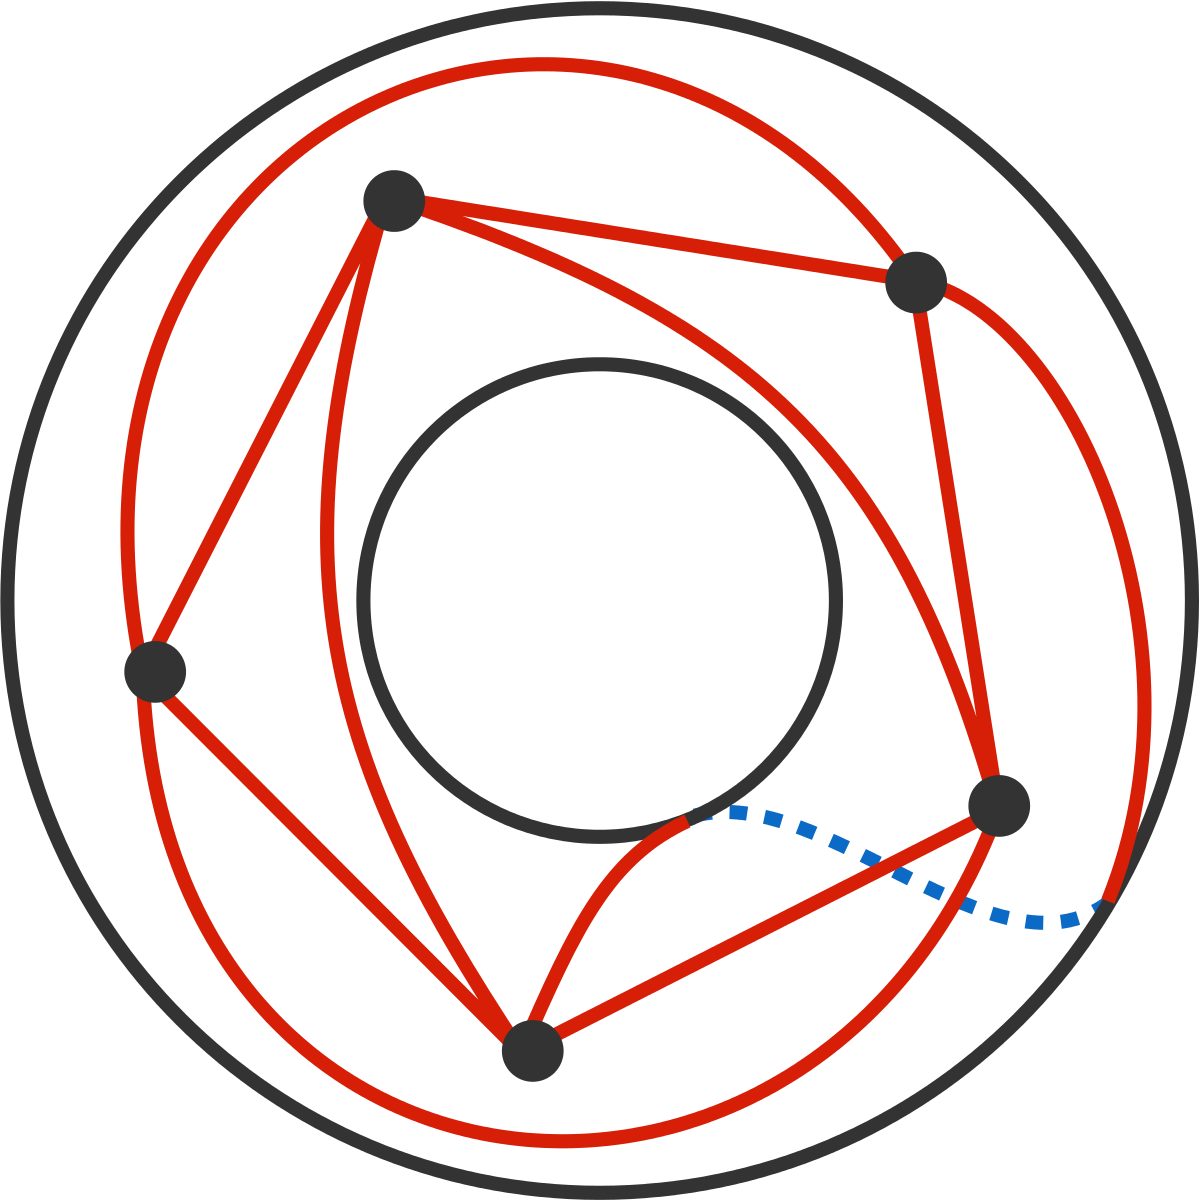 Top view of the torus. The blue dotted line is on the bottom side.